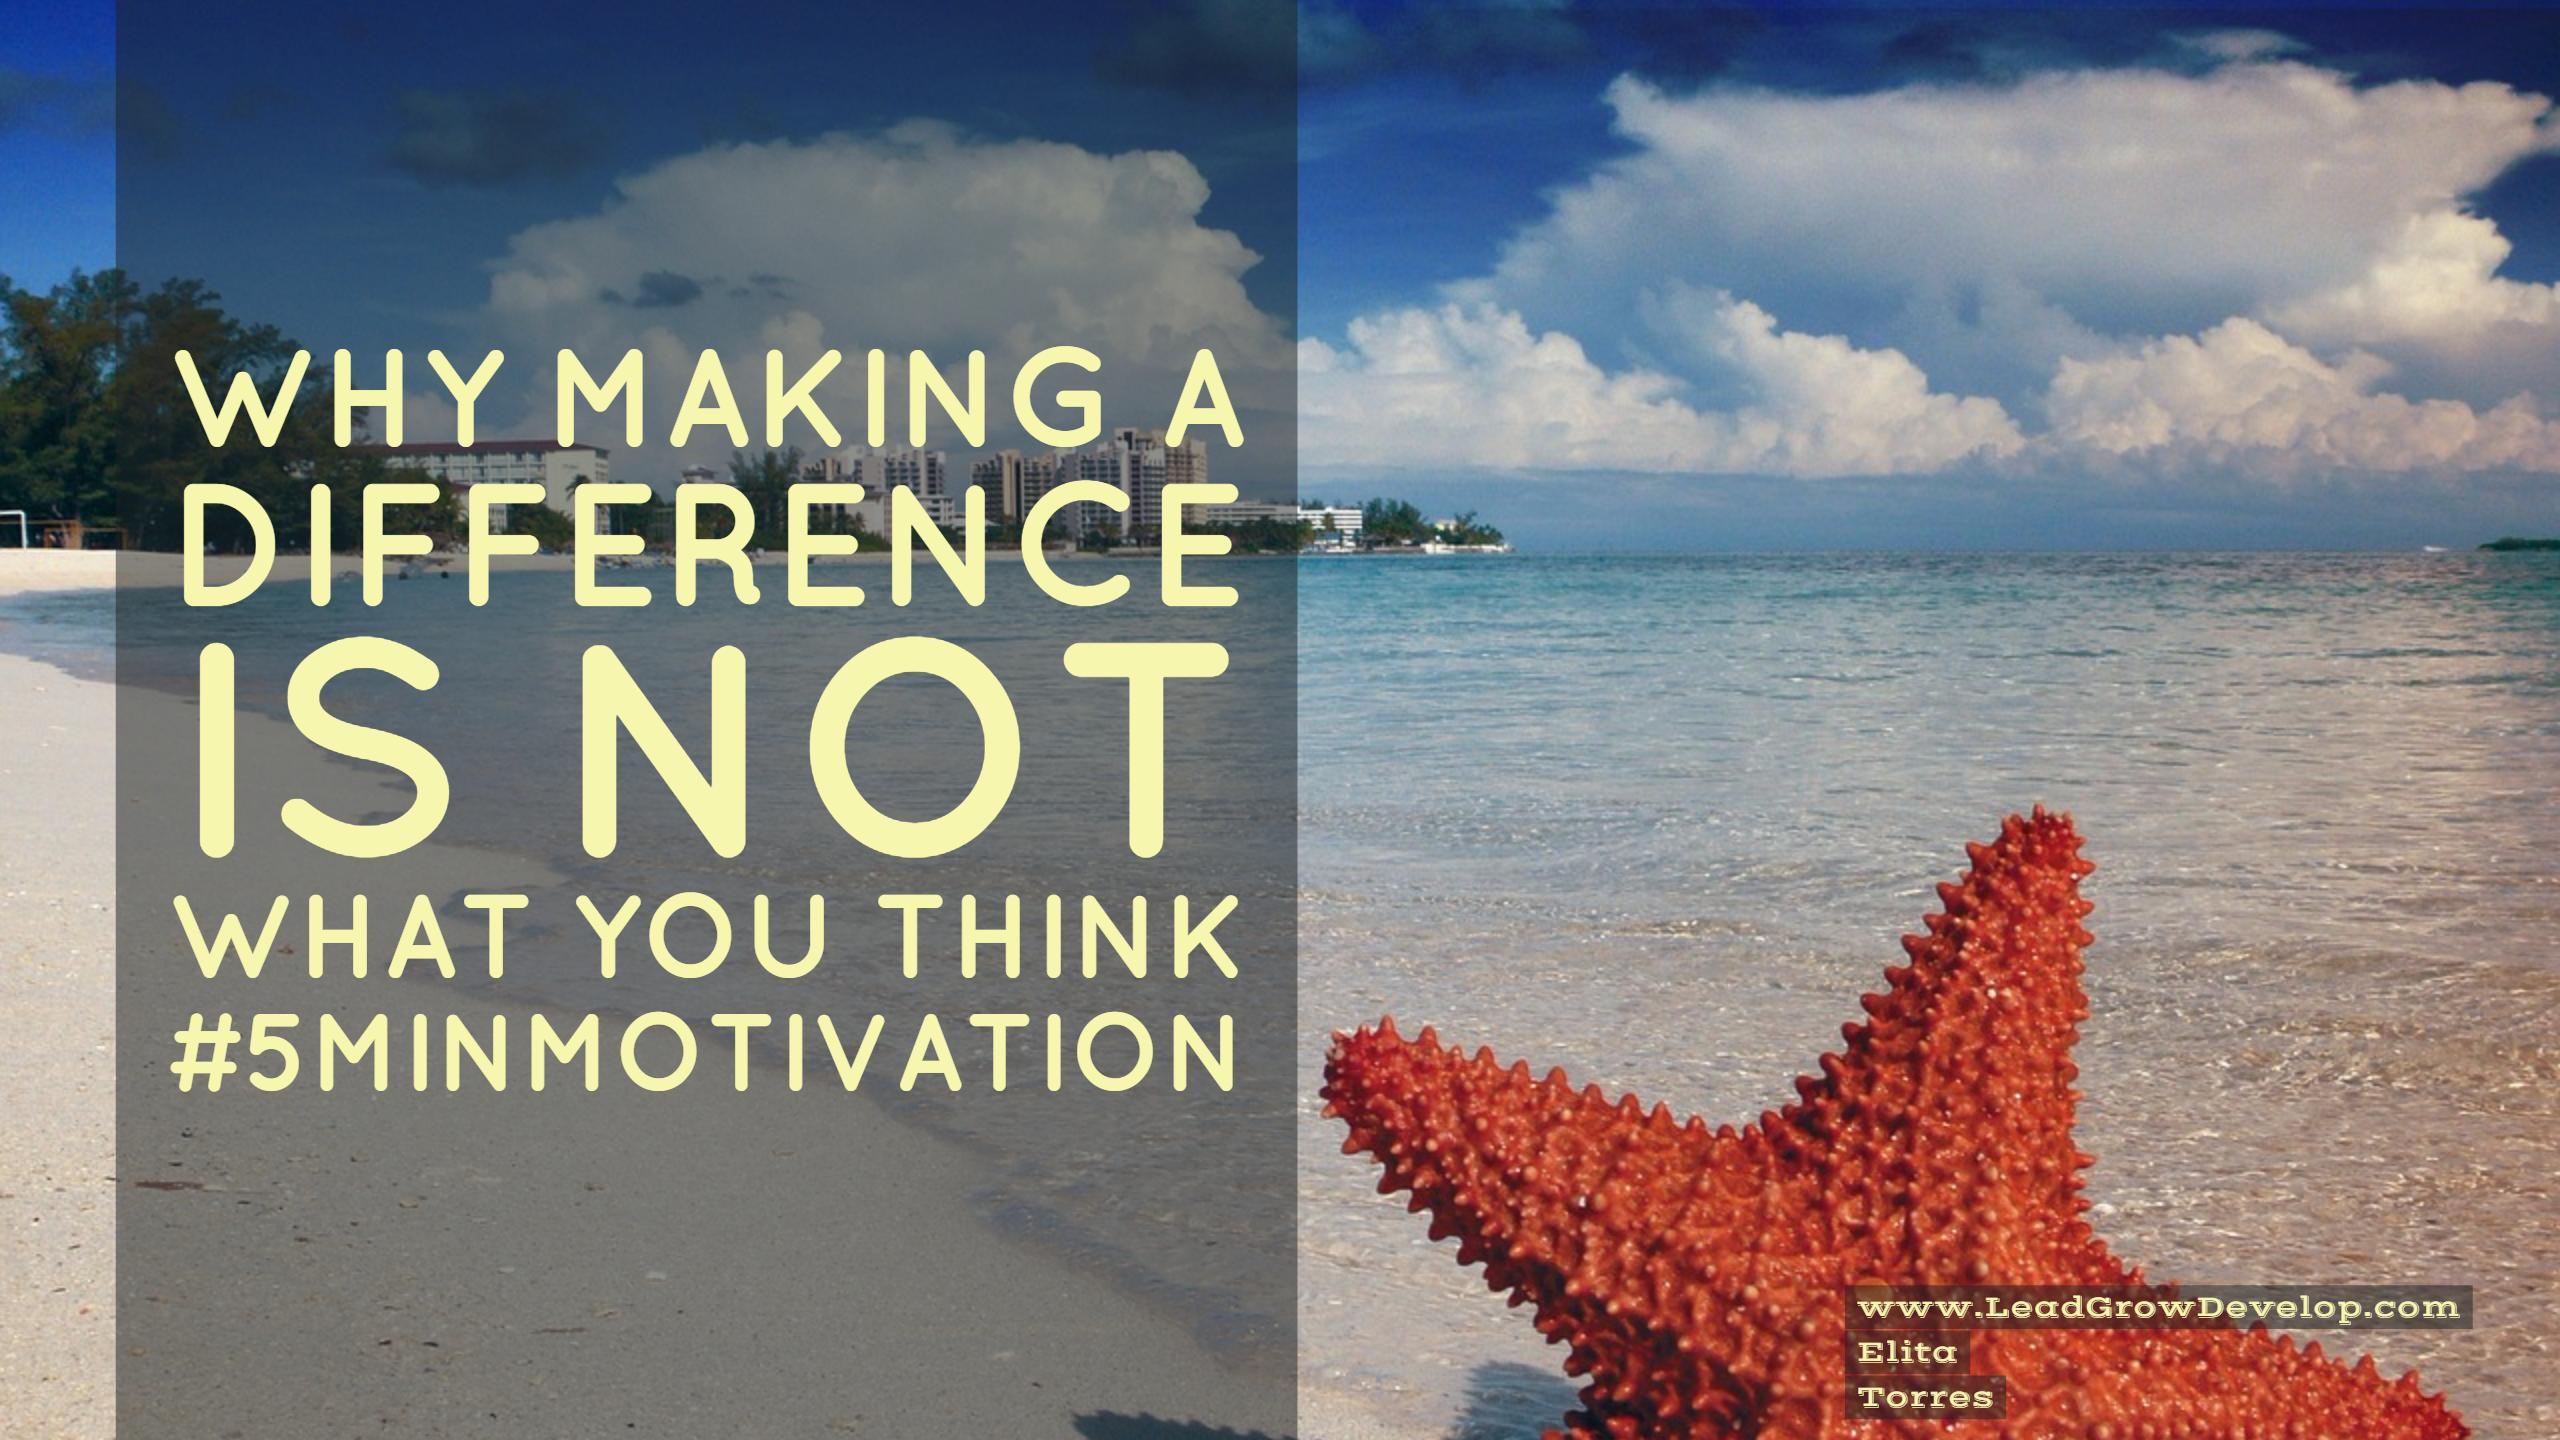 why-making-a-difference-is-not-what-you-think